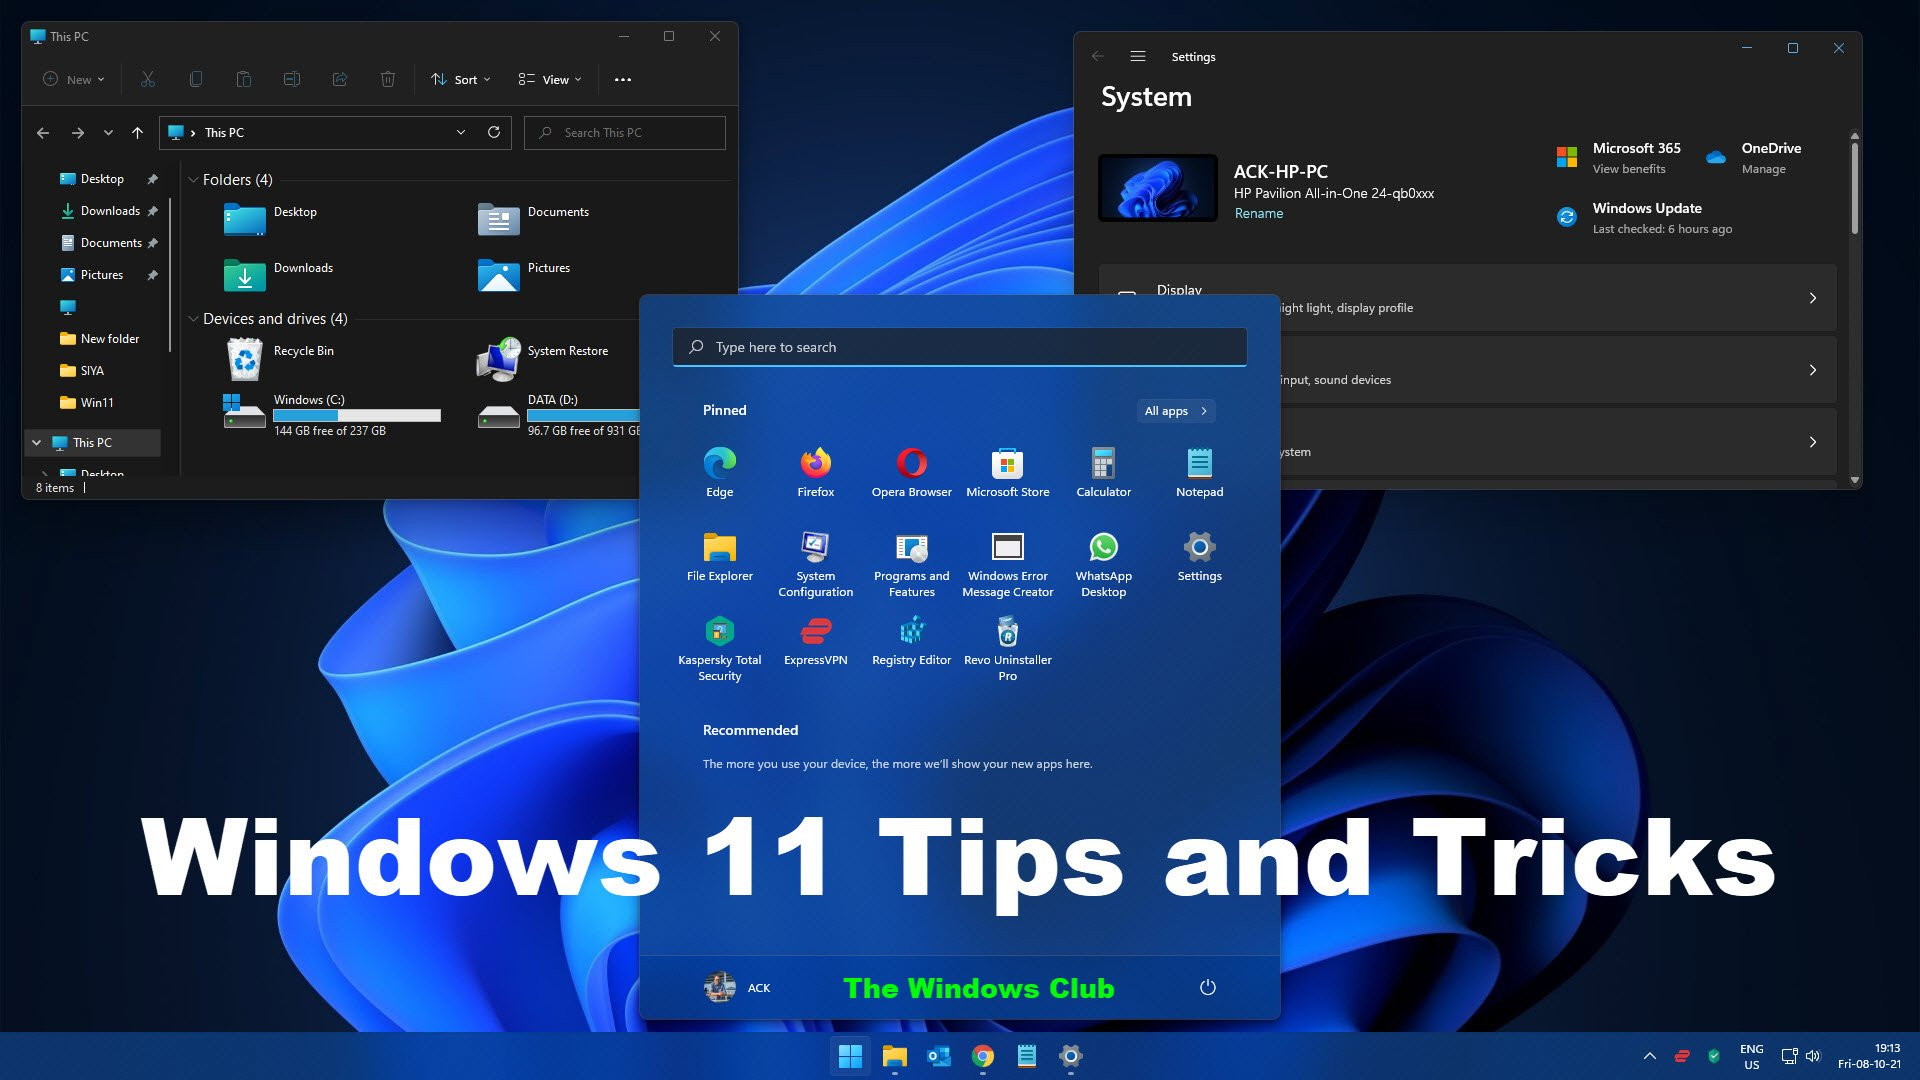 Windows 11 Tips and Tricks